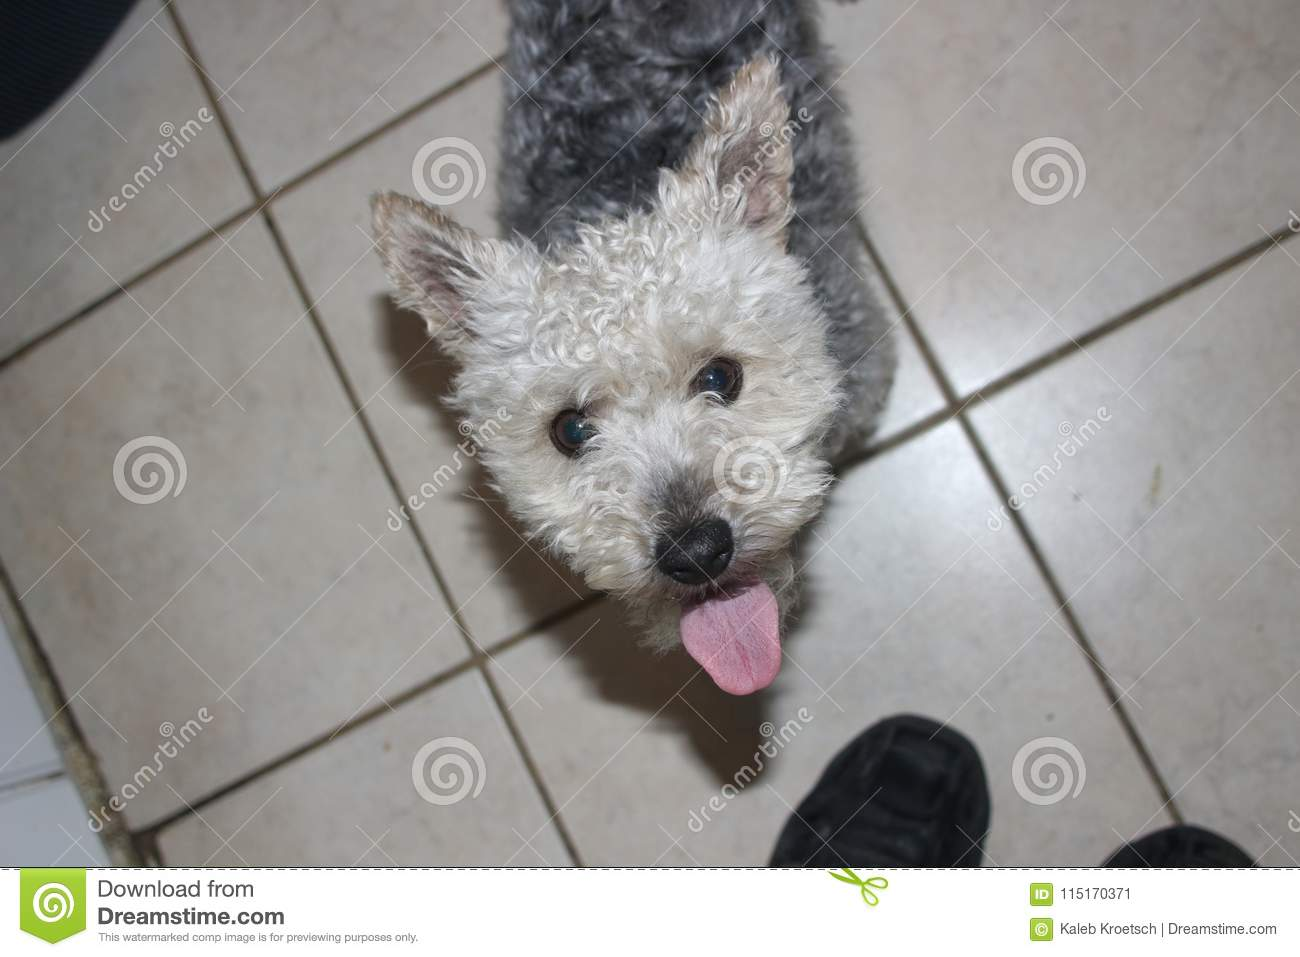 Yorkie And Poodle Mix A Mutt Dog Very Cute Stock Image Image Of